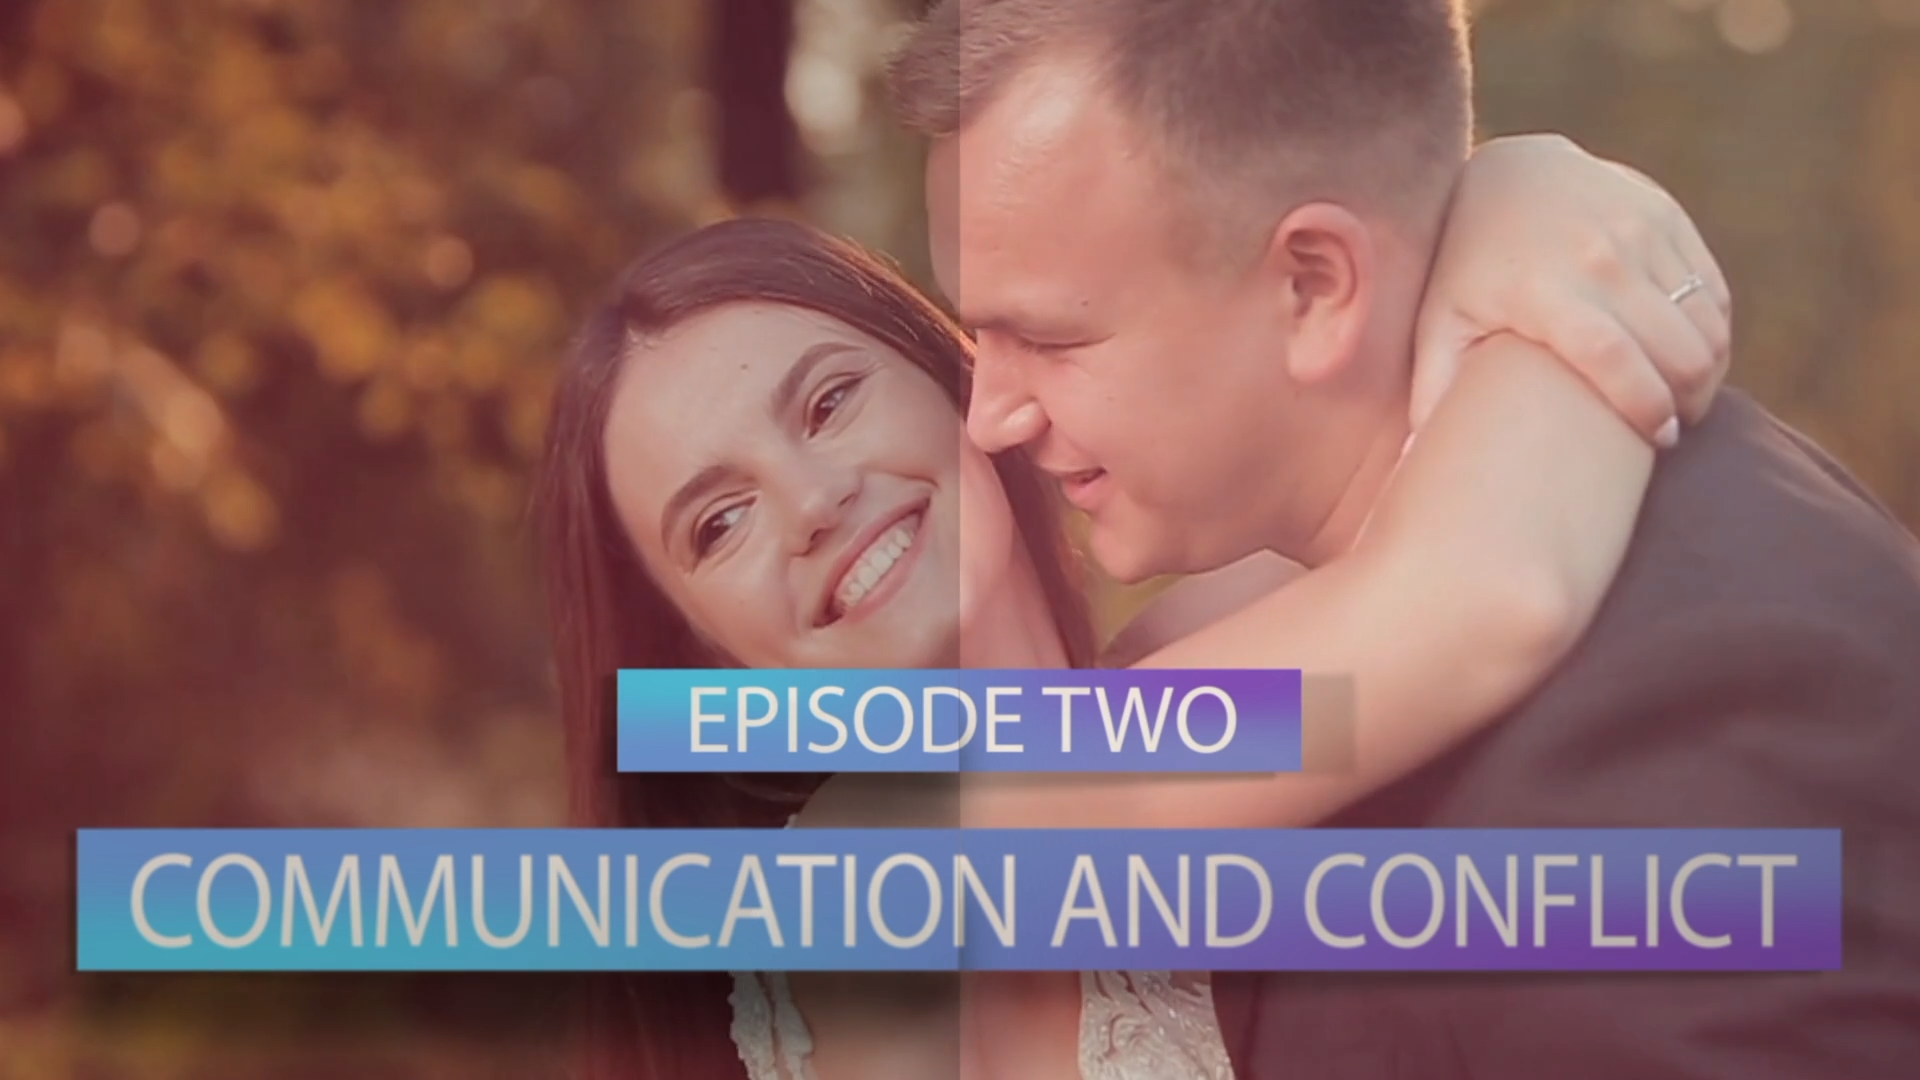 Episode 2 Communication and Conflict